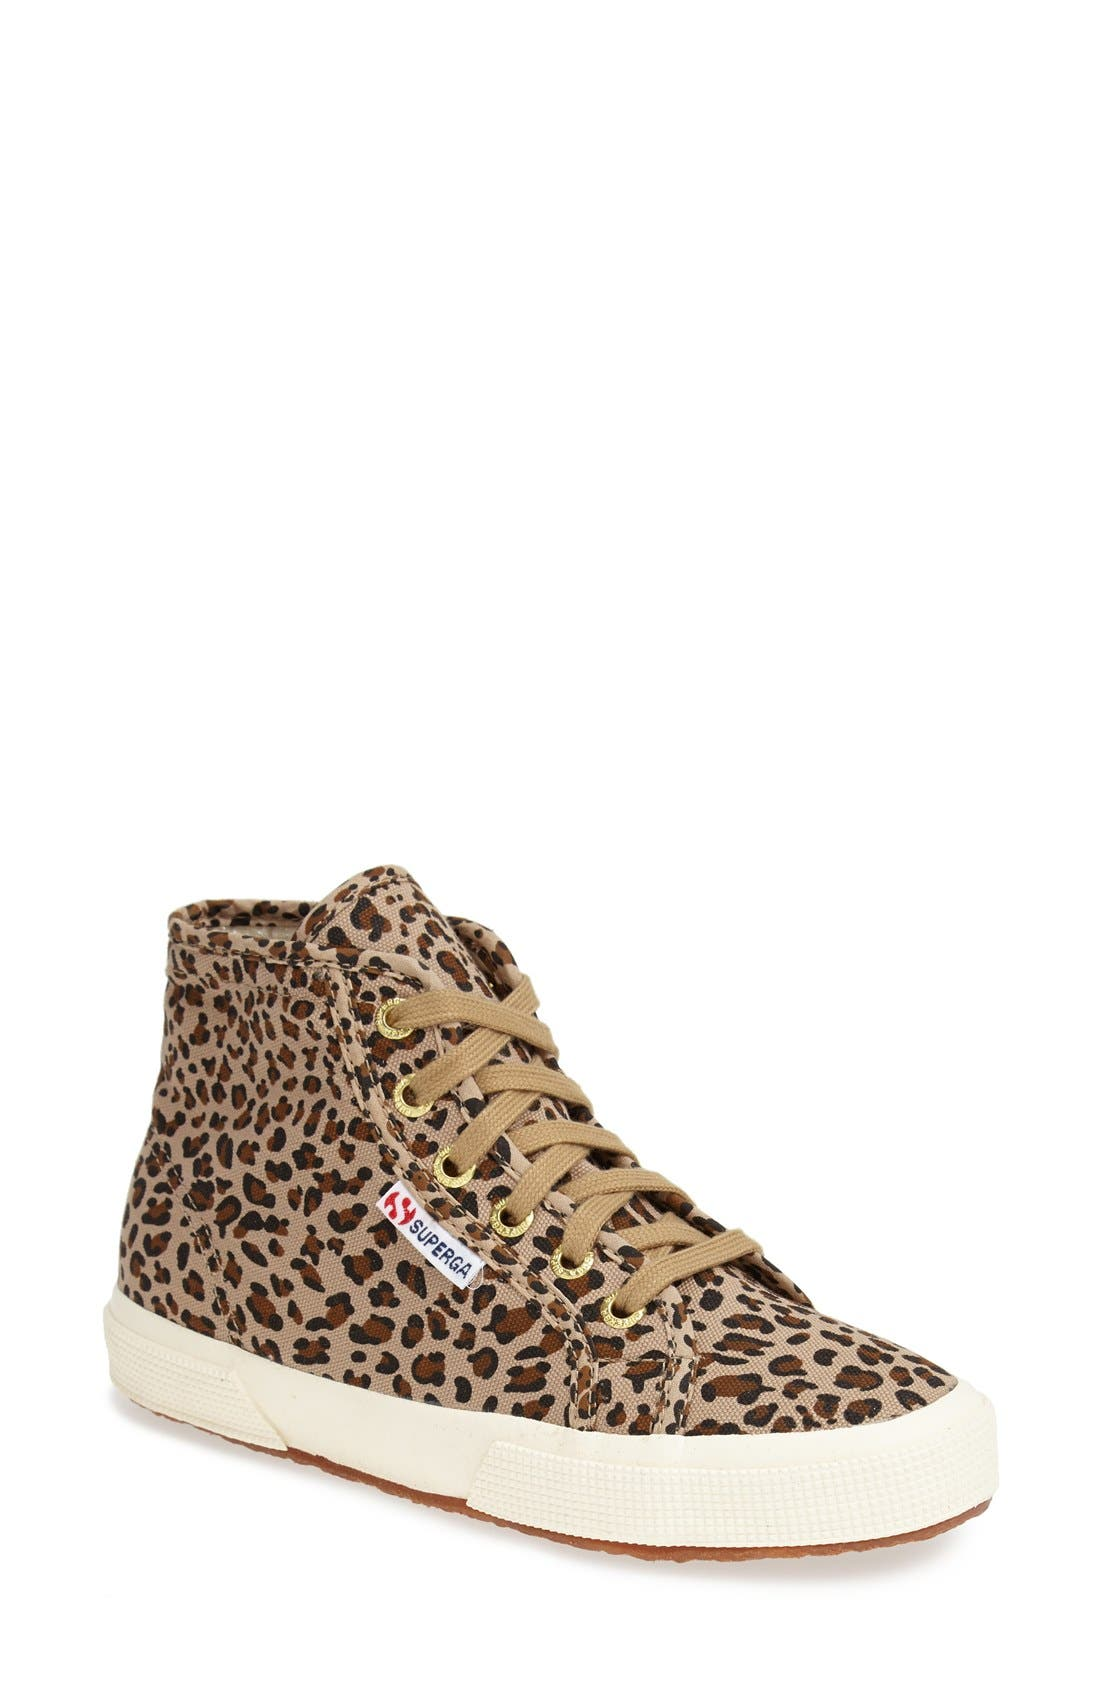 Main Image - Superga 'Leo' High Top Sneaker (Women)